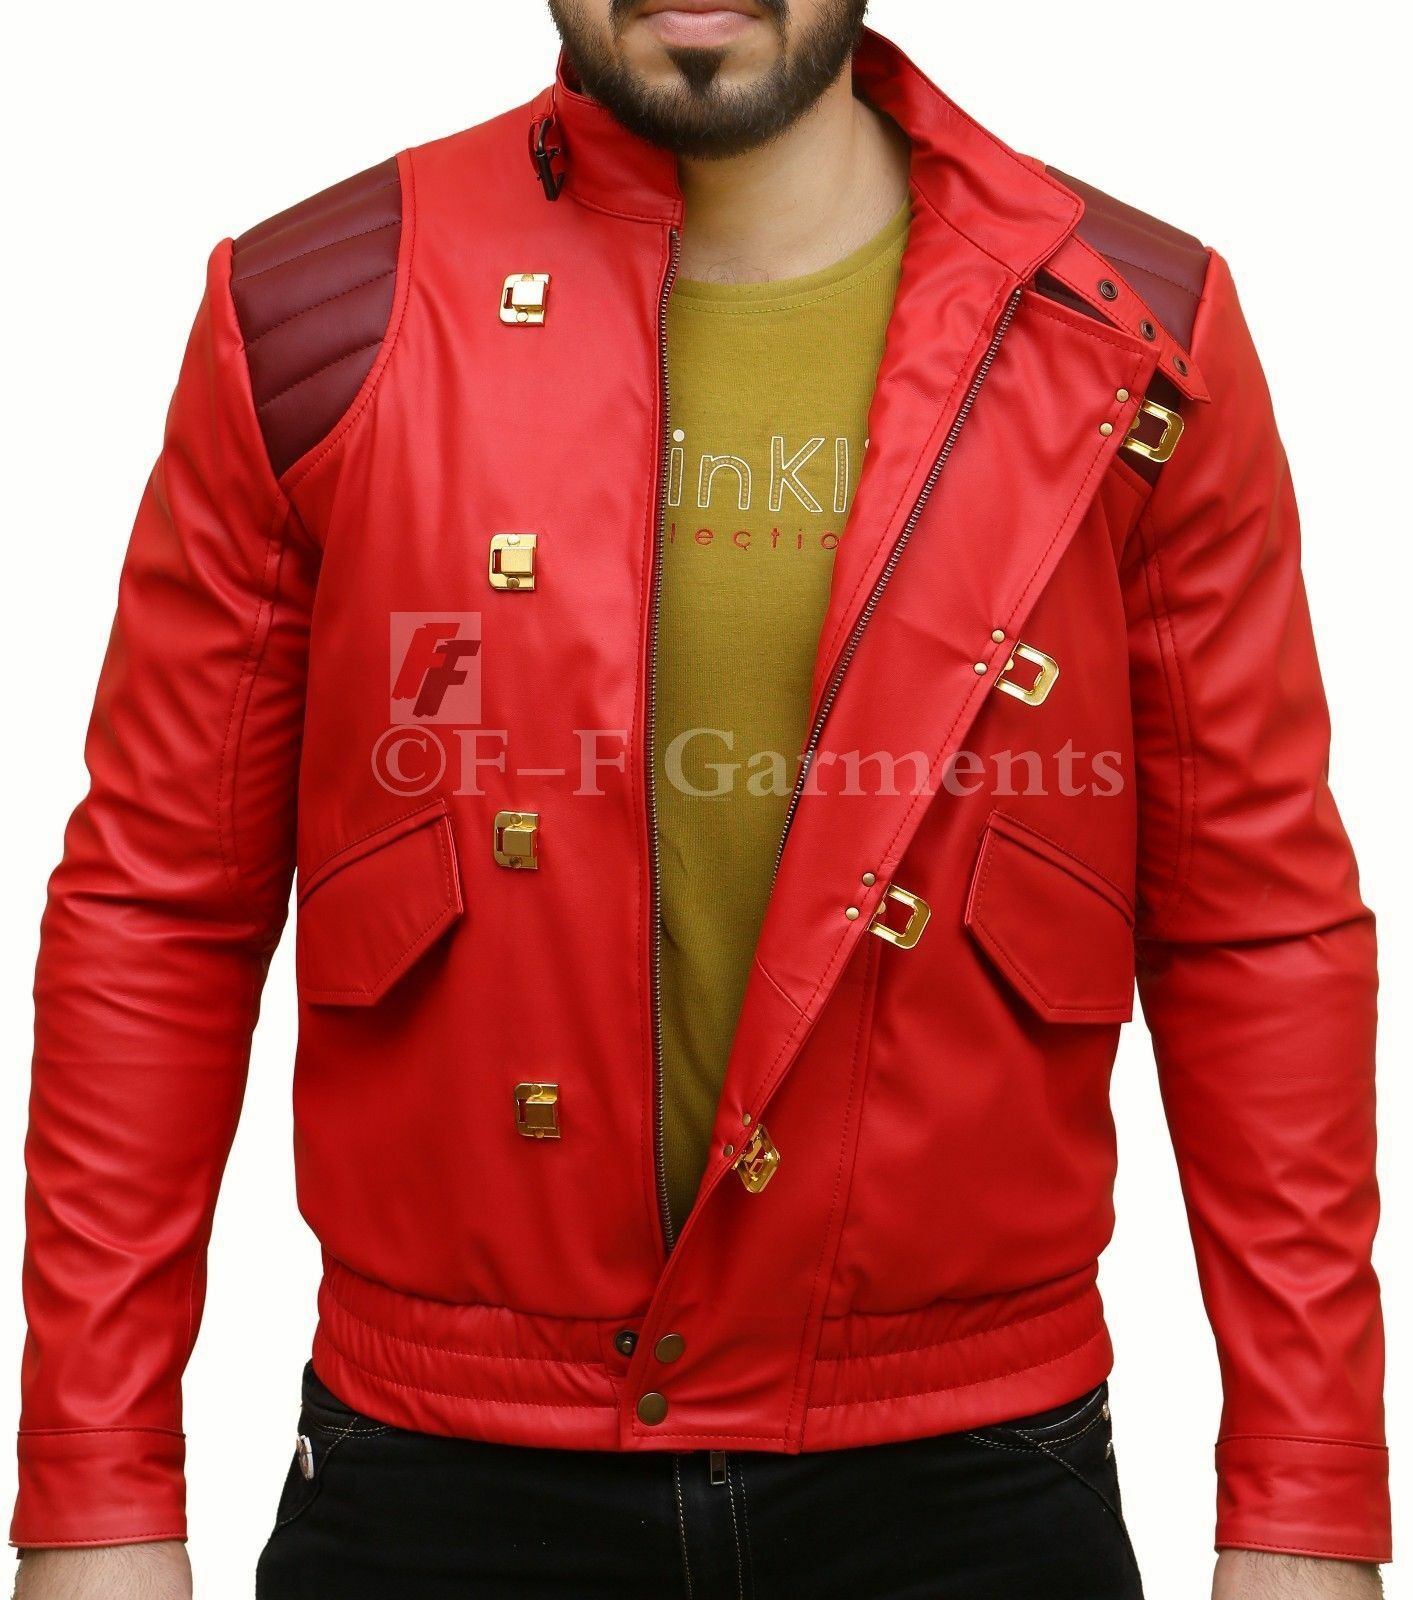 Vintage Akira Kaneda Embroidered Capsule Motorcycle Faux Red Leather Jacket For Sale Online Ebay